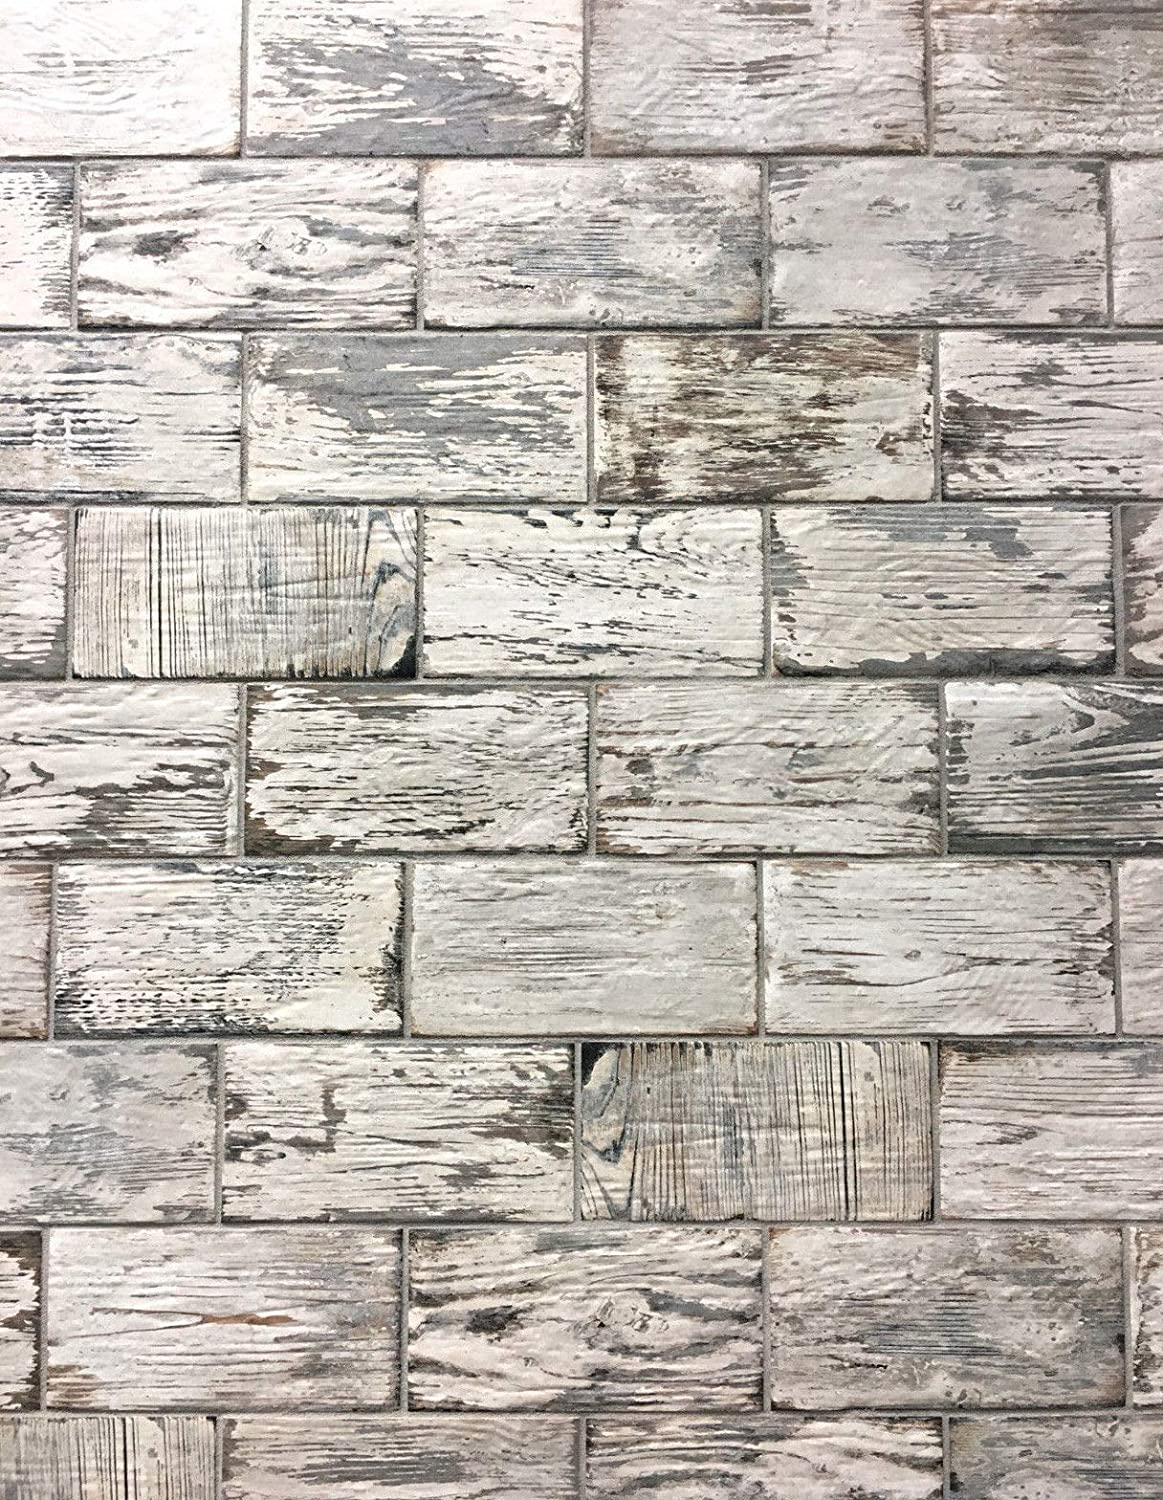 Rustic White Brick Look 4x8 Porcelain Tile Wall Floor Kitchen Box Of 34 Ceramic Flooring Tiles Amazon Canada